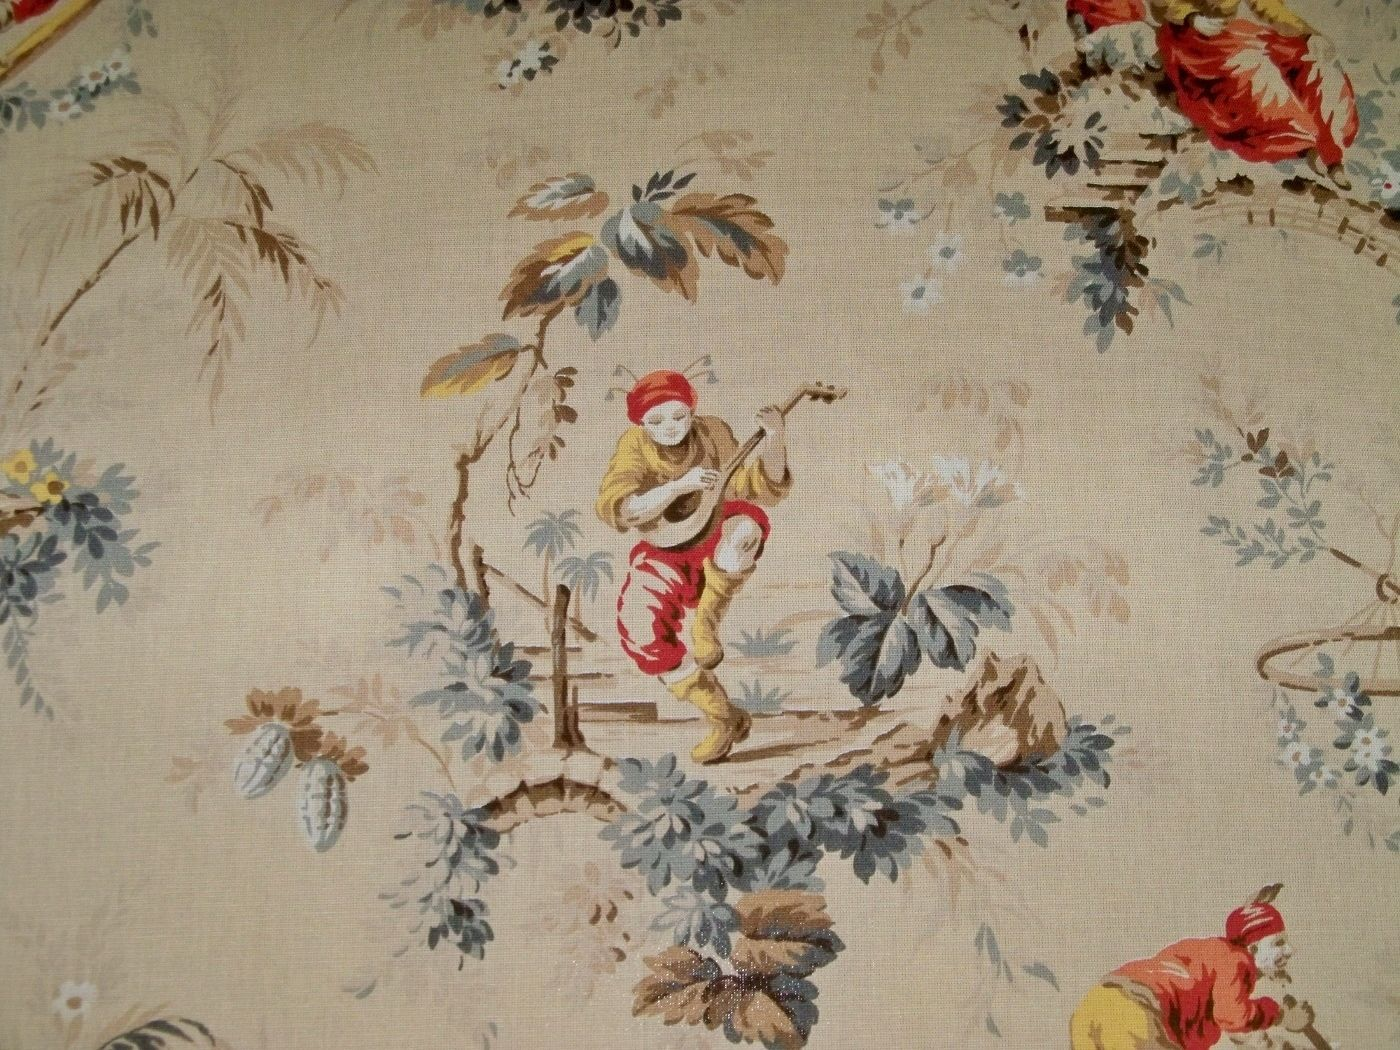 Designer Chinoiserie Toile Fabric 3 5 Yard Remnant Maize Multi | eBay